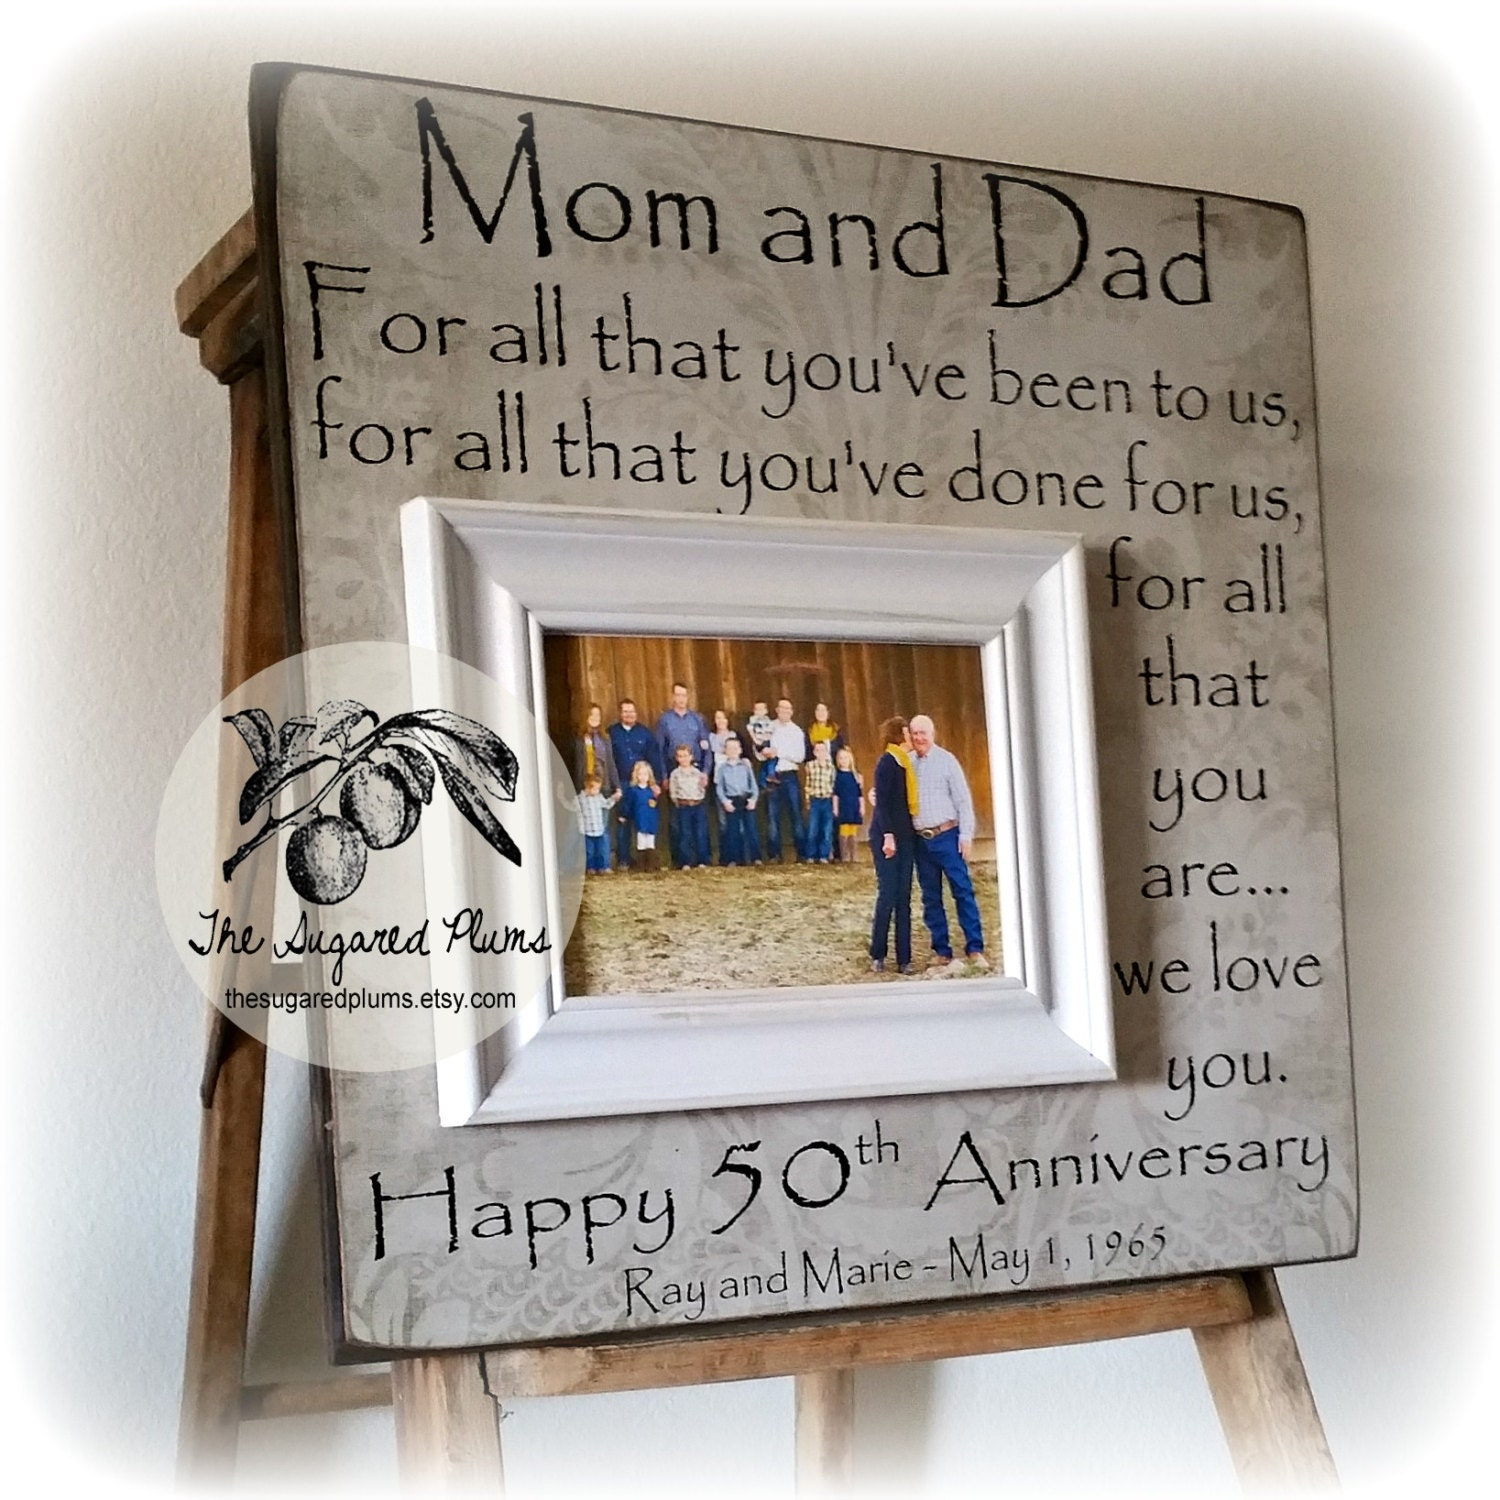 Creative Wedding Anniversary Ideas For Parents : 50th Anniversary Gifts Parents Anniversary Gift For All That